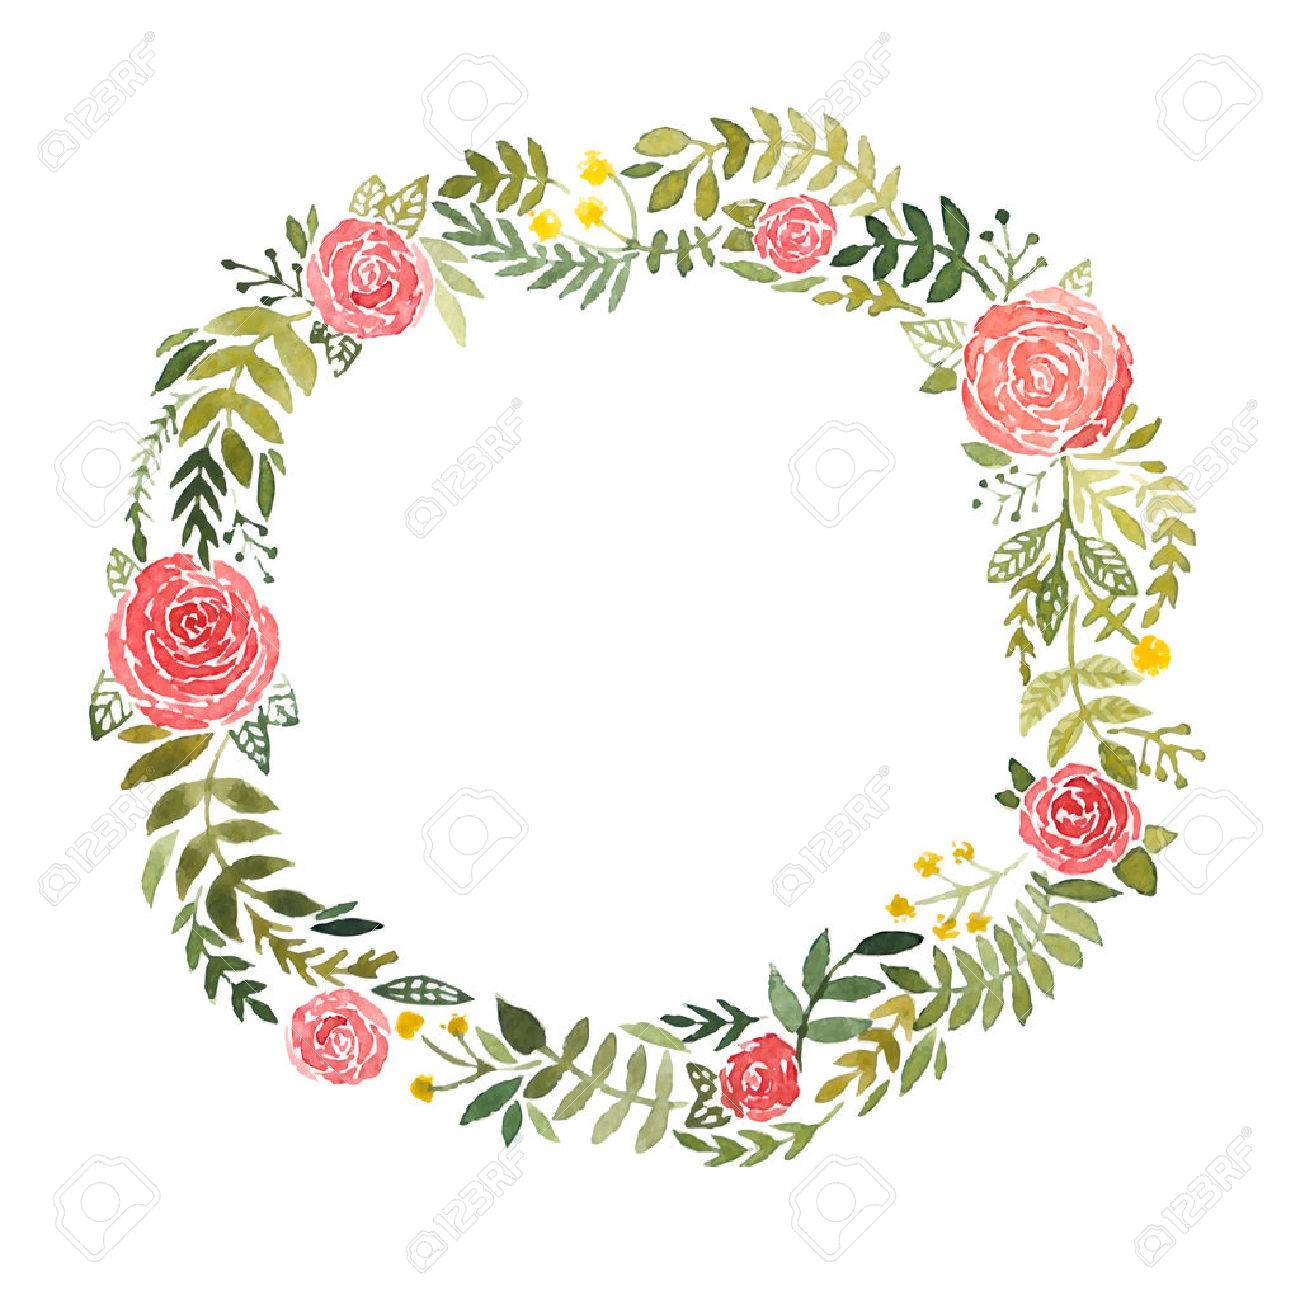 Vector round frame with pink flowers on white background in pastel - Flower Wreath Watercolor Wreath With Roses And Leaves Isolated On White Background